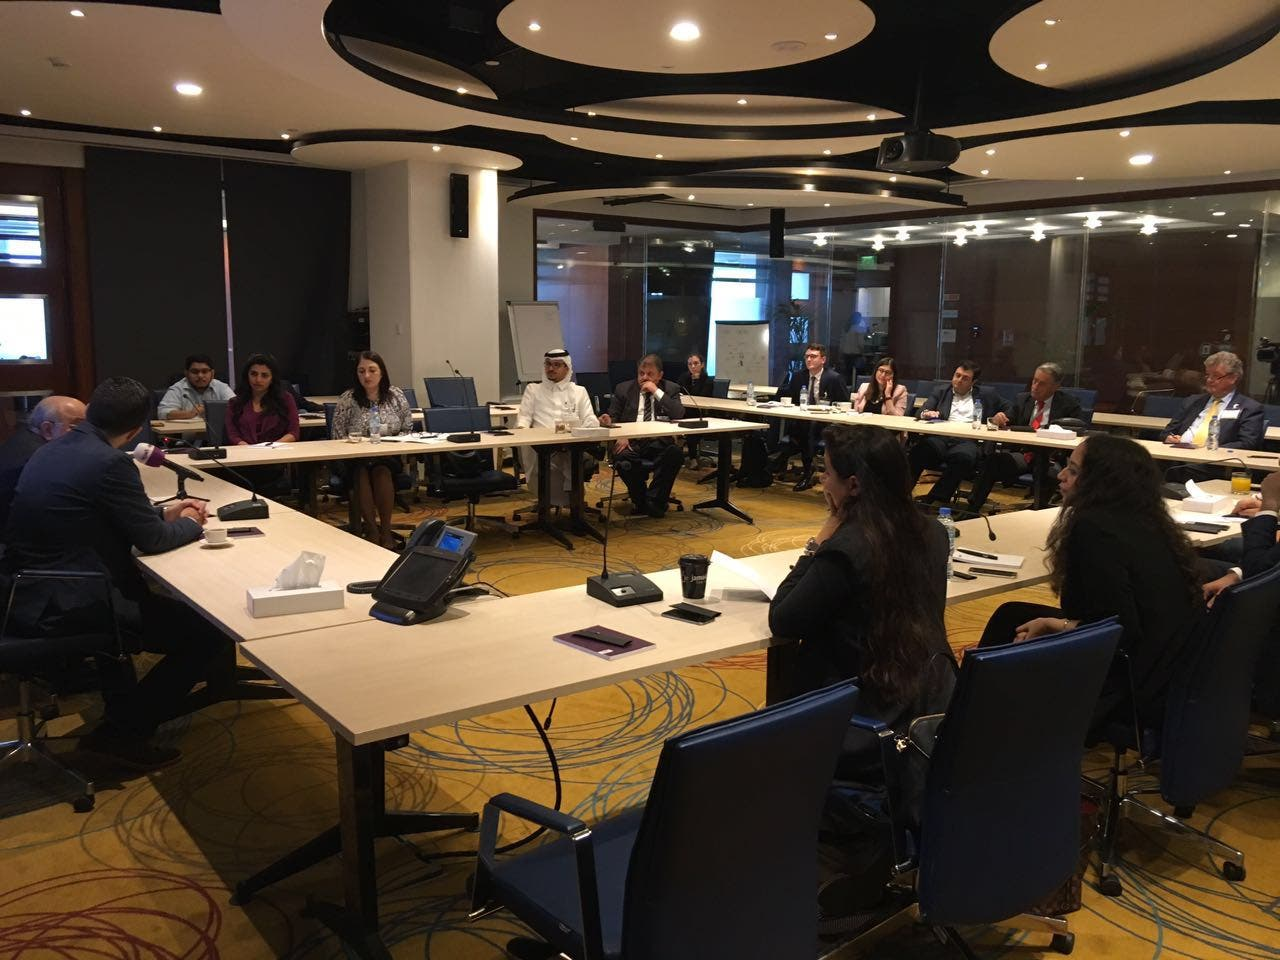 A host of media officials and political experts attend the session discussing the past, present and future of the Druze people. (Al Arabiya English)